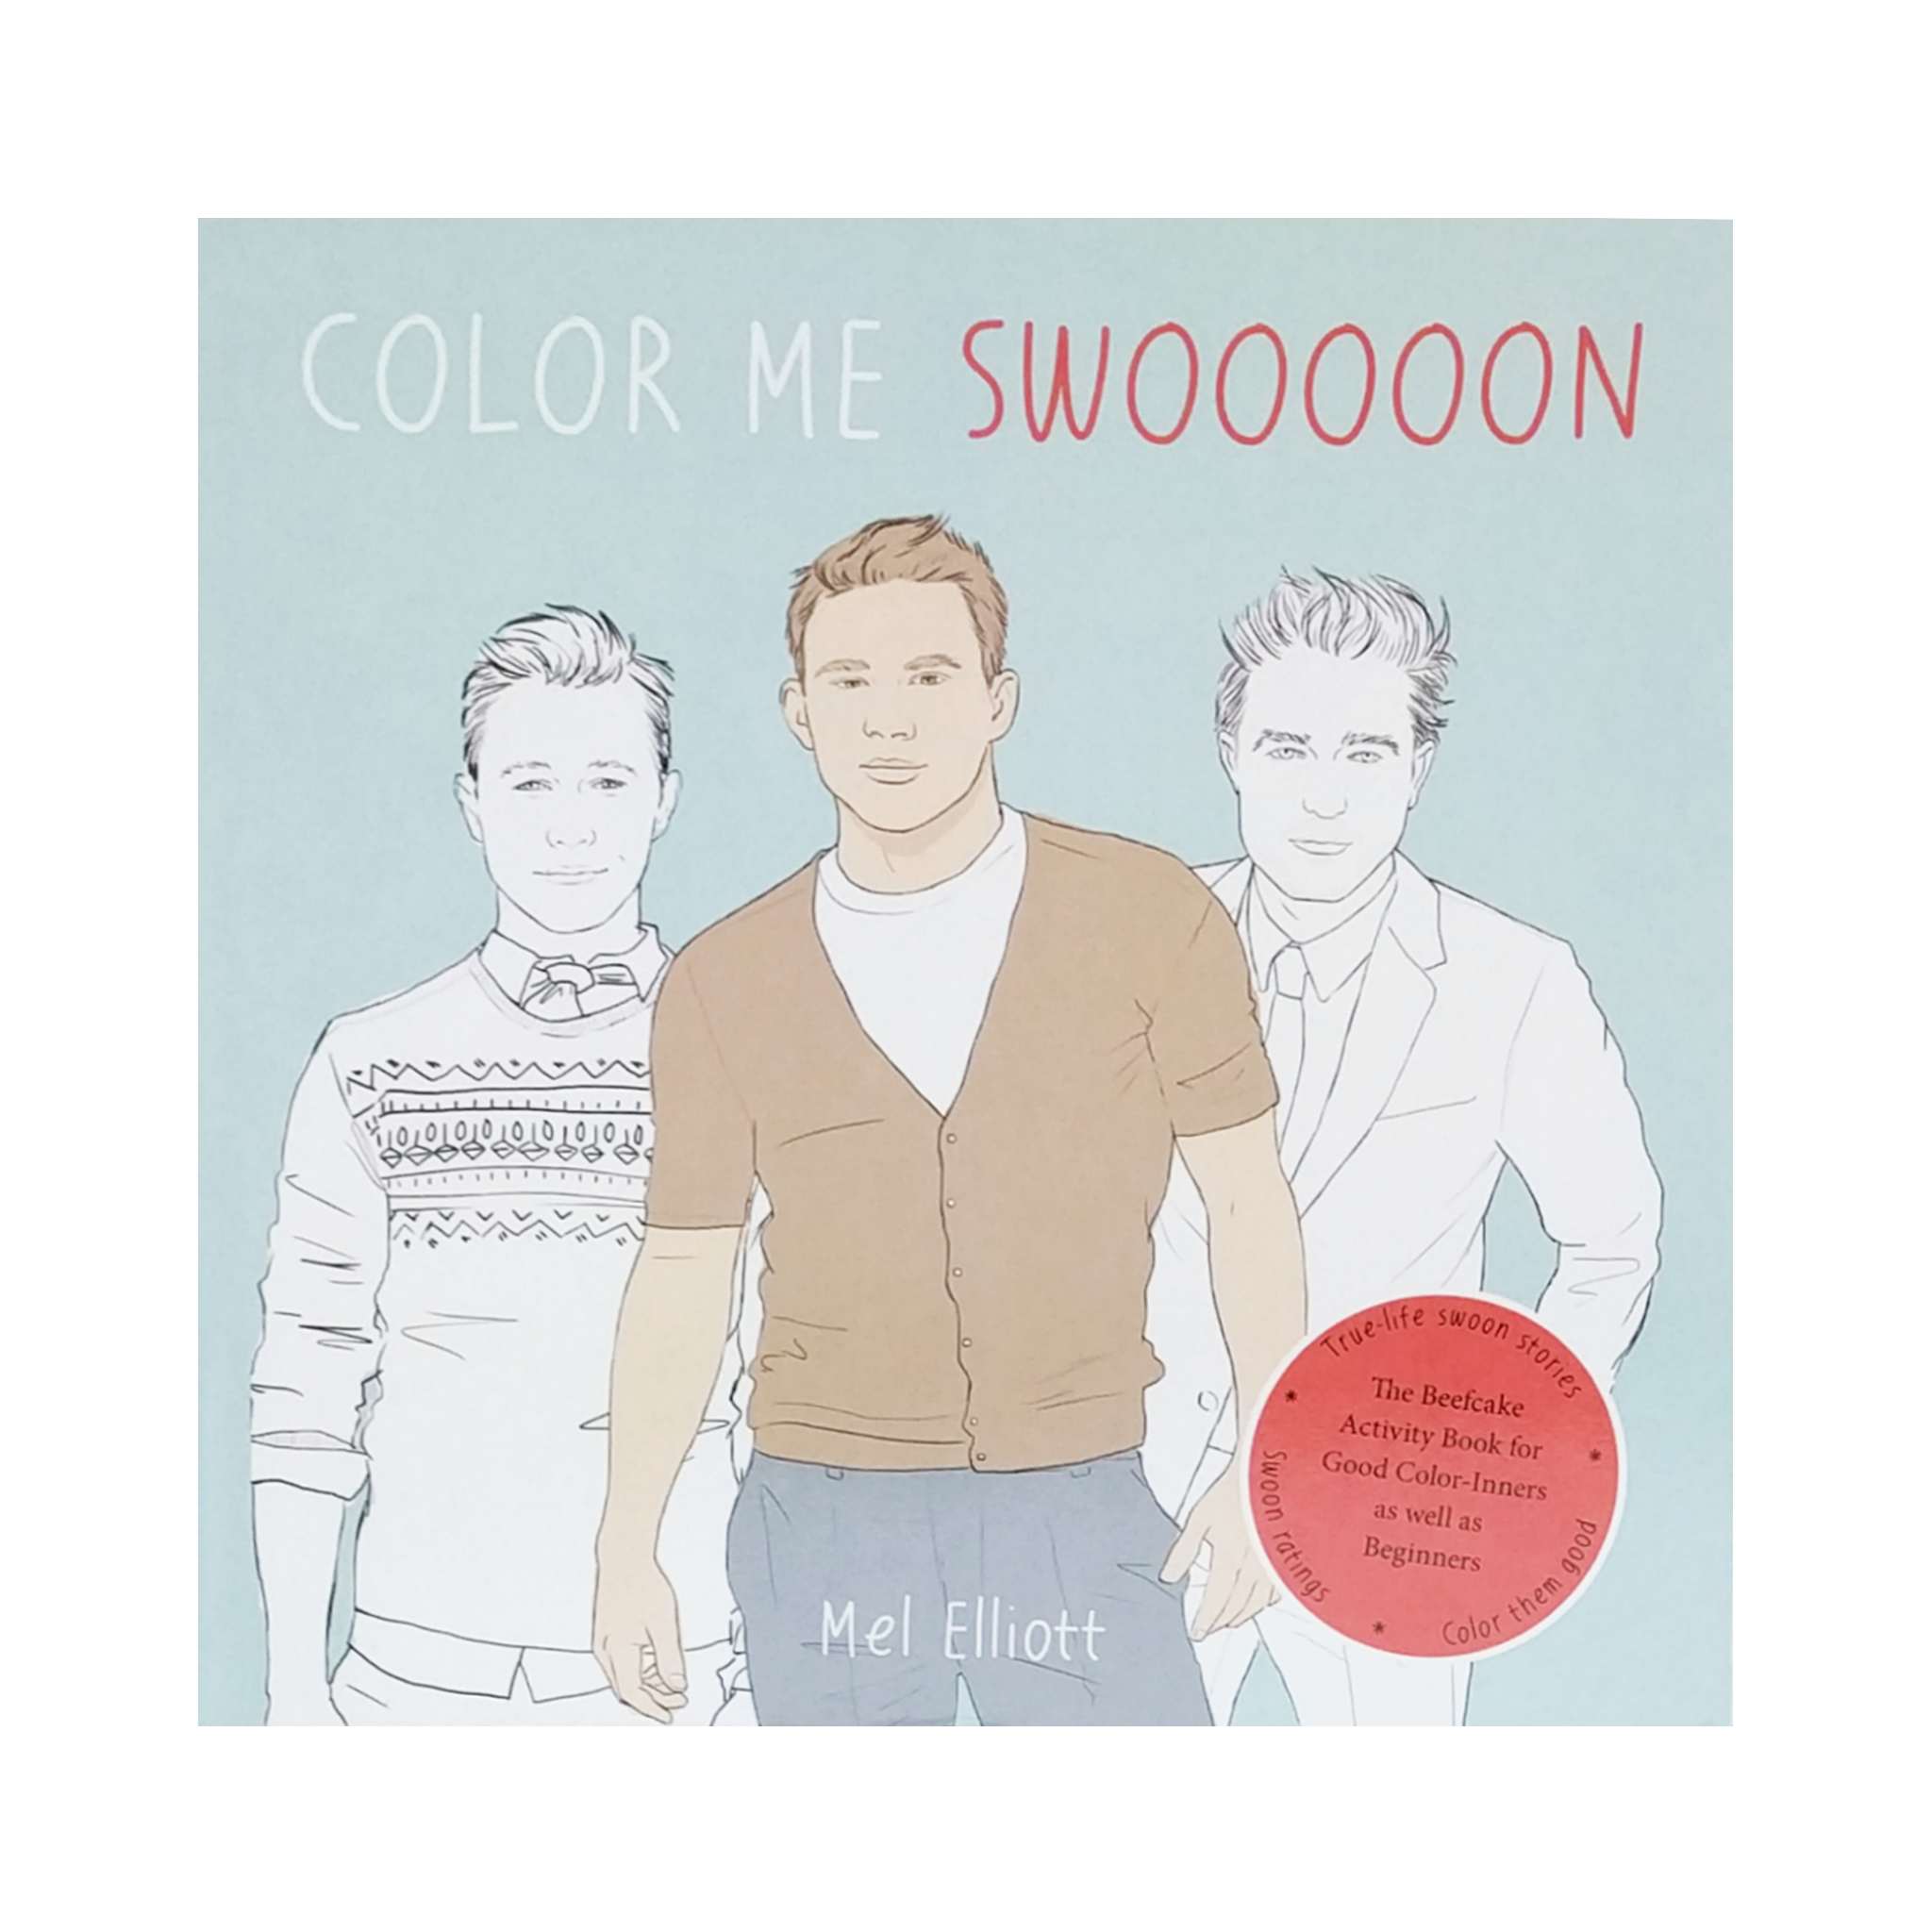 Co color to draw - Co Color Me Draw Me Animal Kingdom Book Color Me Swoon The Beefcake Activity Book